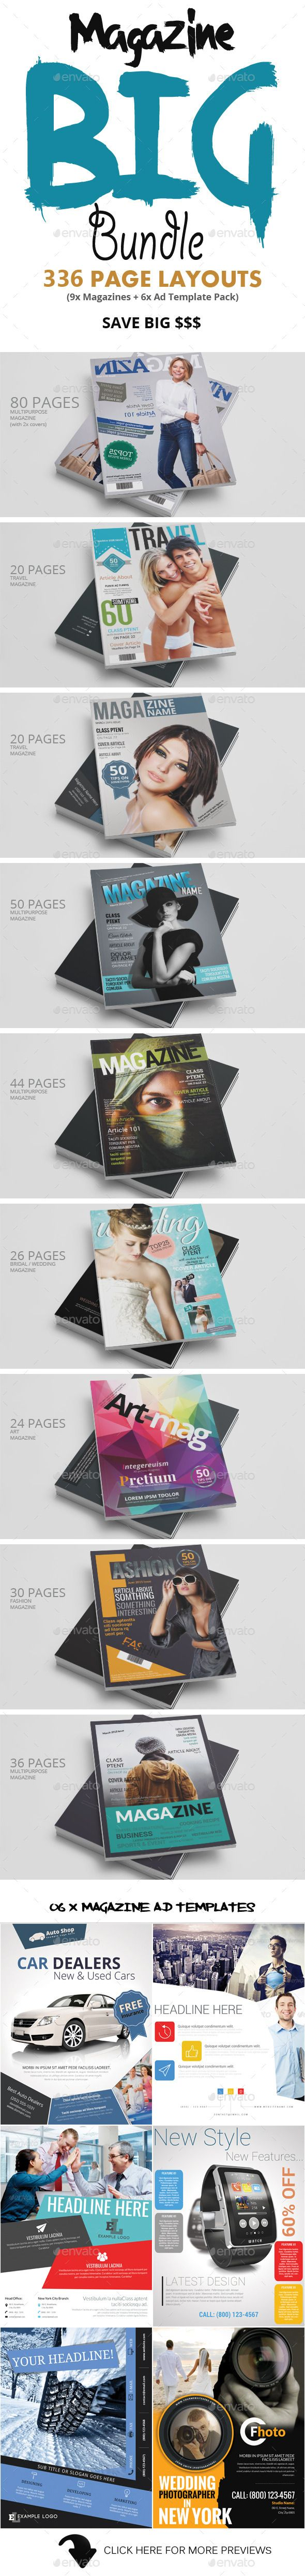 Photoshop Magazine Big Bundle - Magazines Print Templates 9x Magazines + 6x Magazine Ad Template Pack (10x Items worth $178) This is a Photoshop Magazine Template bundle containing 9x magazine templates and an Ad template pack. total of 336 page layouts. these page layouts can be used as magazines or brochures.